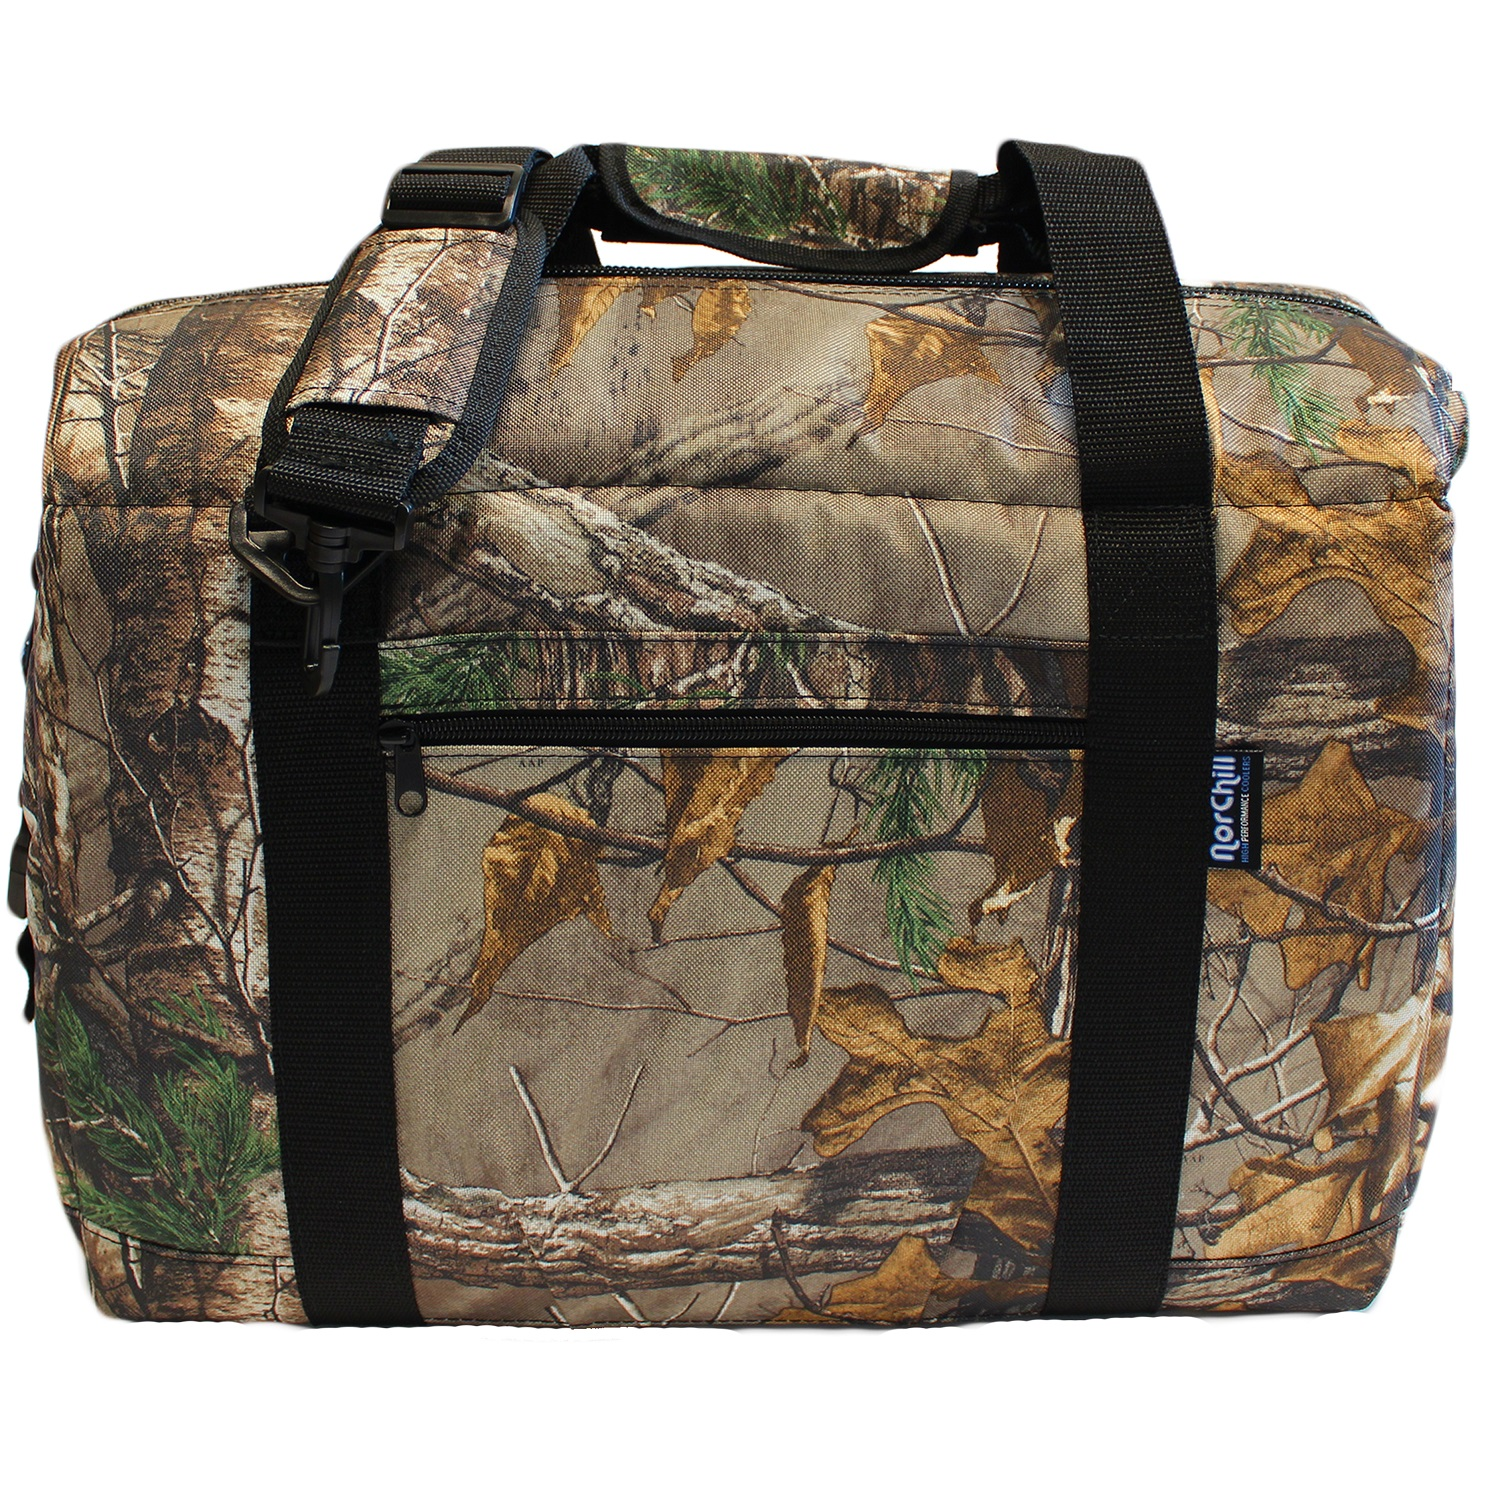 NorChill 48 Can Cooler Bag - Realtree Xtra